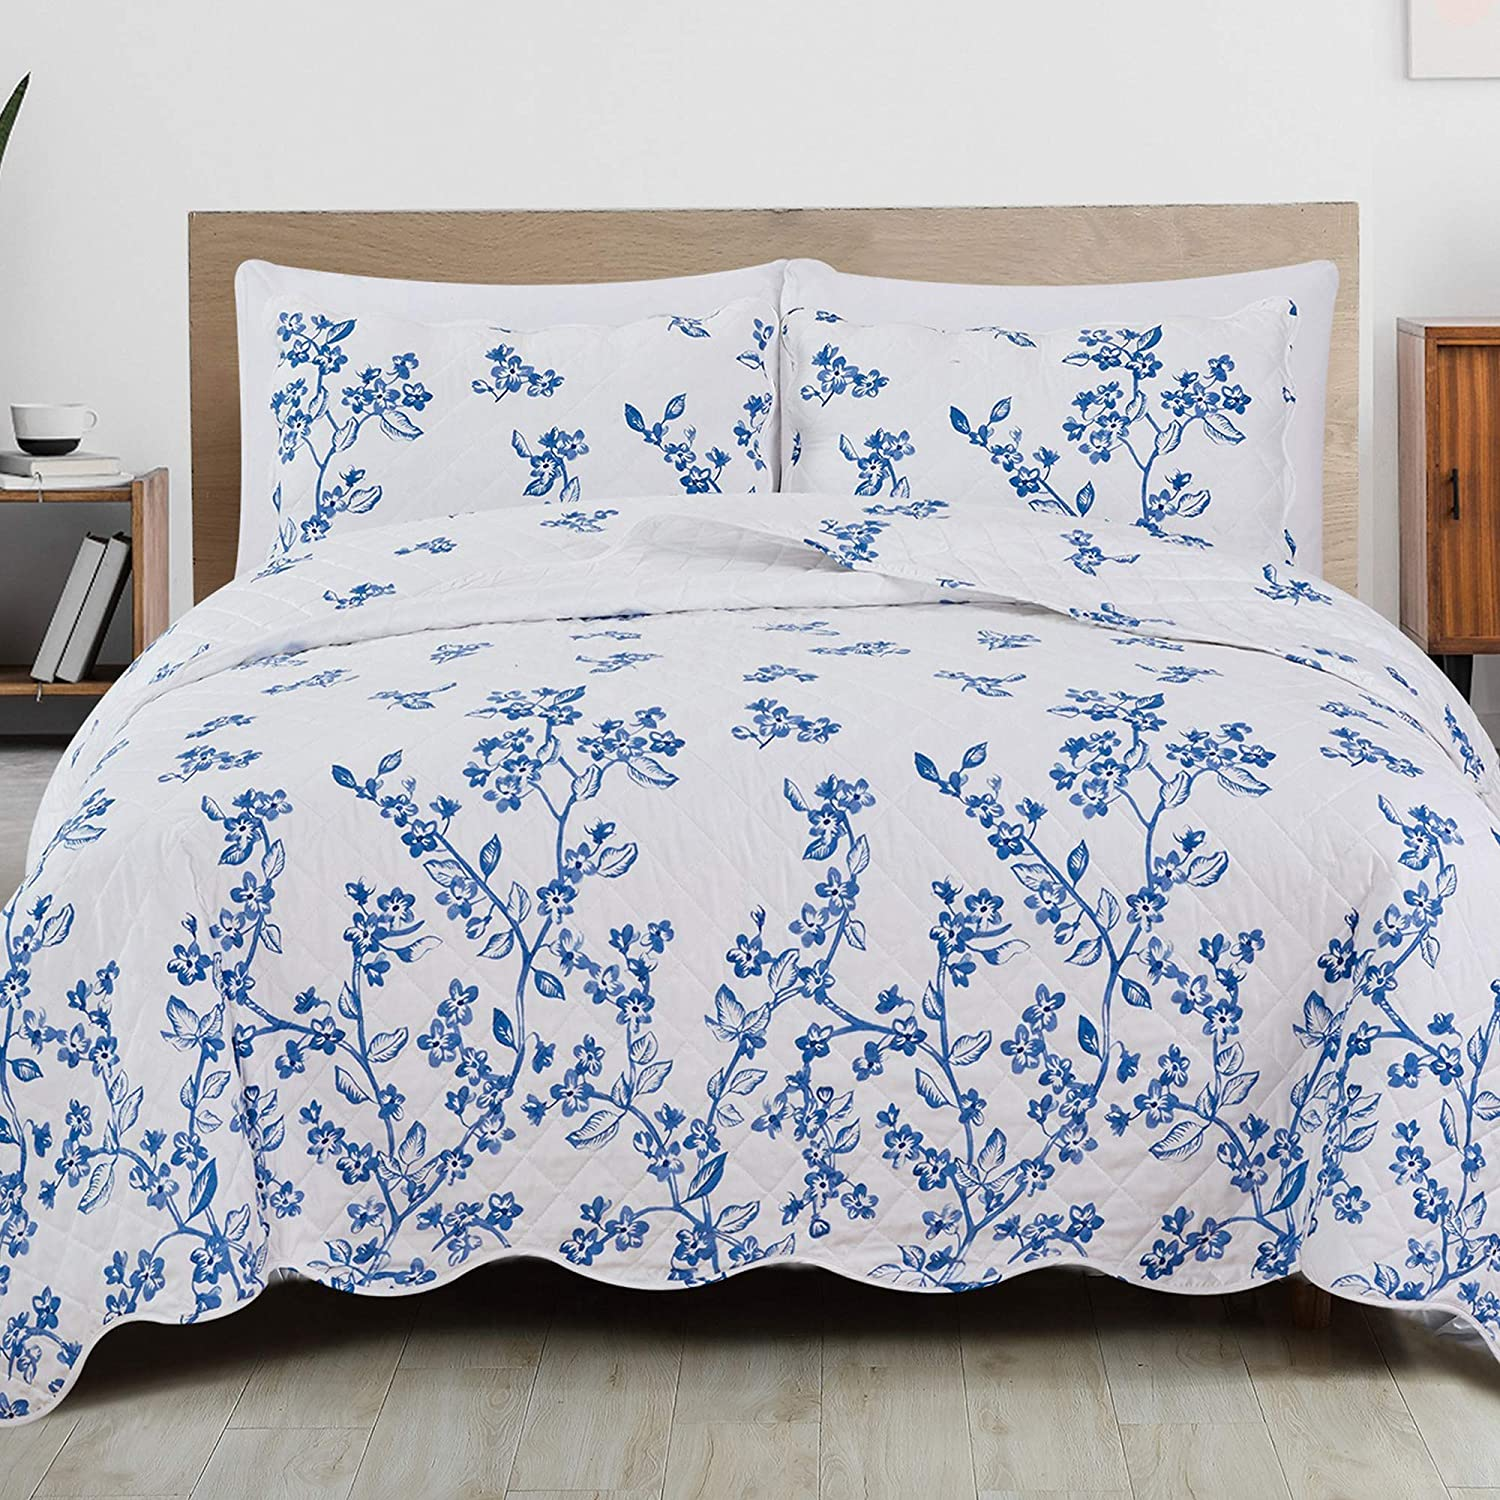 3-Piece Brand new Reversible Quilt Set with Shams. Special price for a limited time Microfiber All-Season B